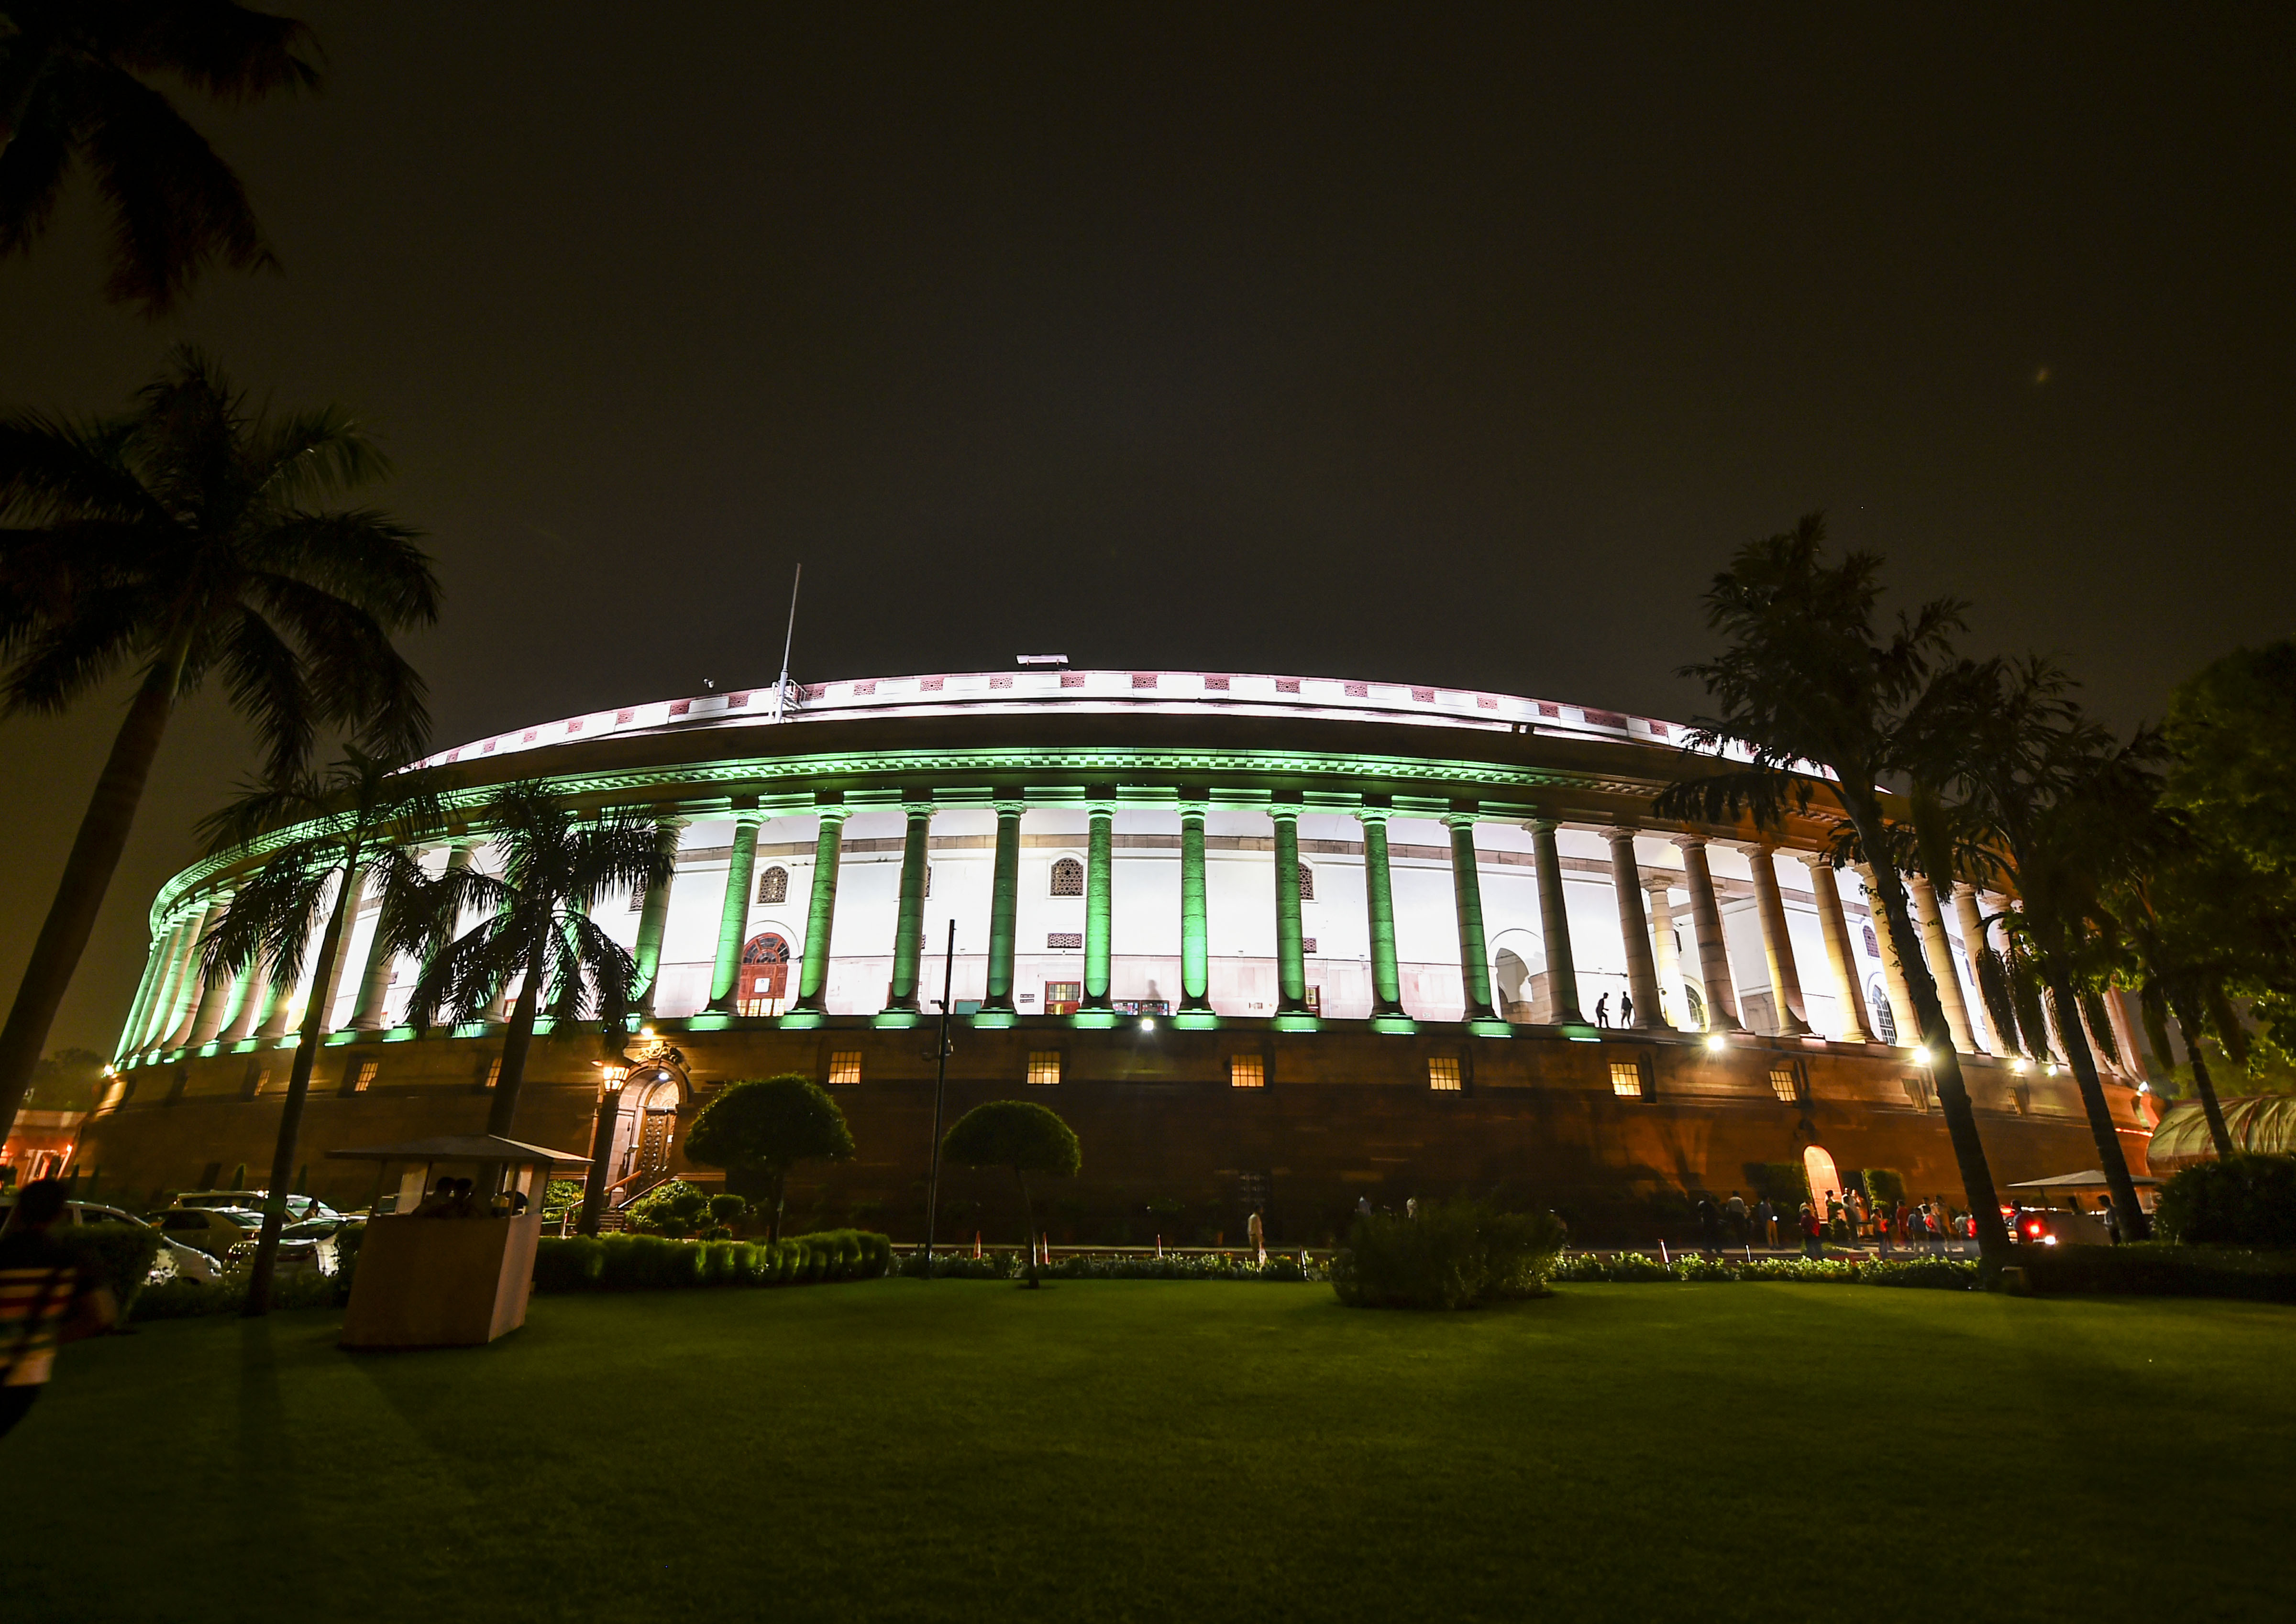 The illuminated Parliament House on August 5 where the BJP central government using a Presidential order scrapped special powers to Jammu and Kashmir under Article 370. The same day, Rajya Sabha passed a bill that split the state into two Union territories.